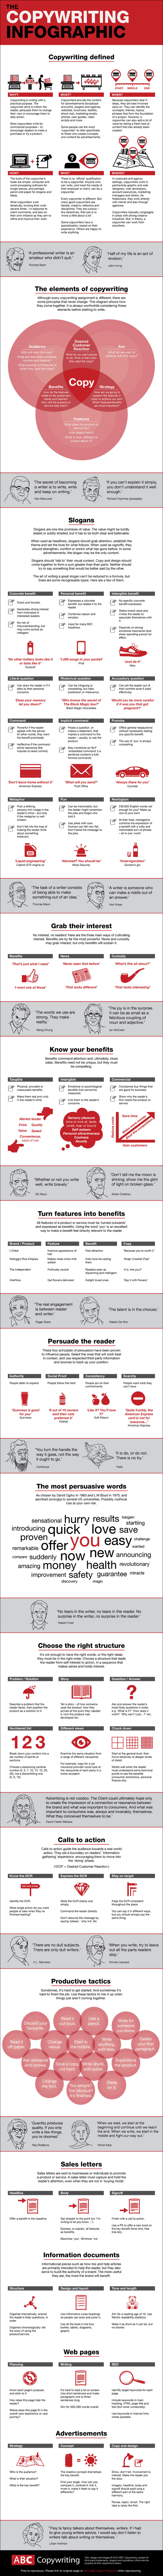 Writing a Copy to Grab Visitors' Attention & Persuade Them